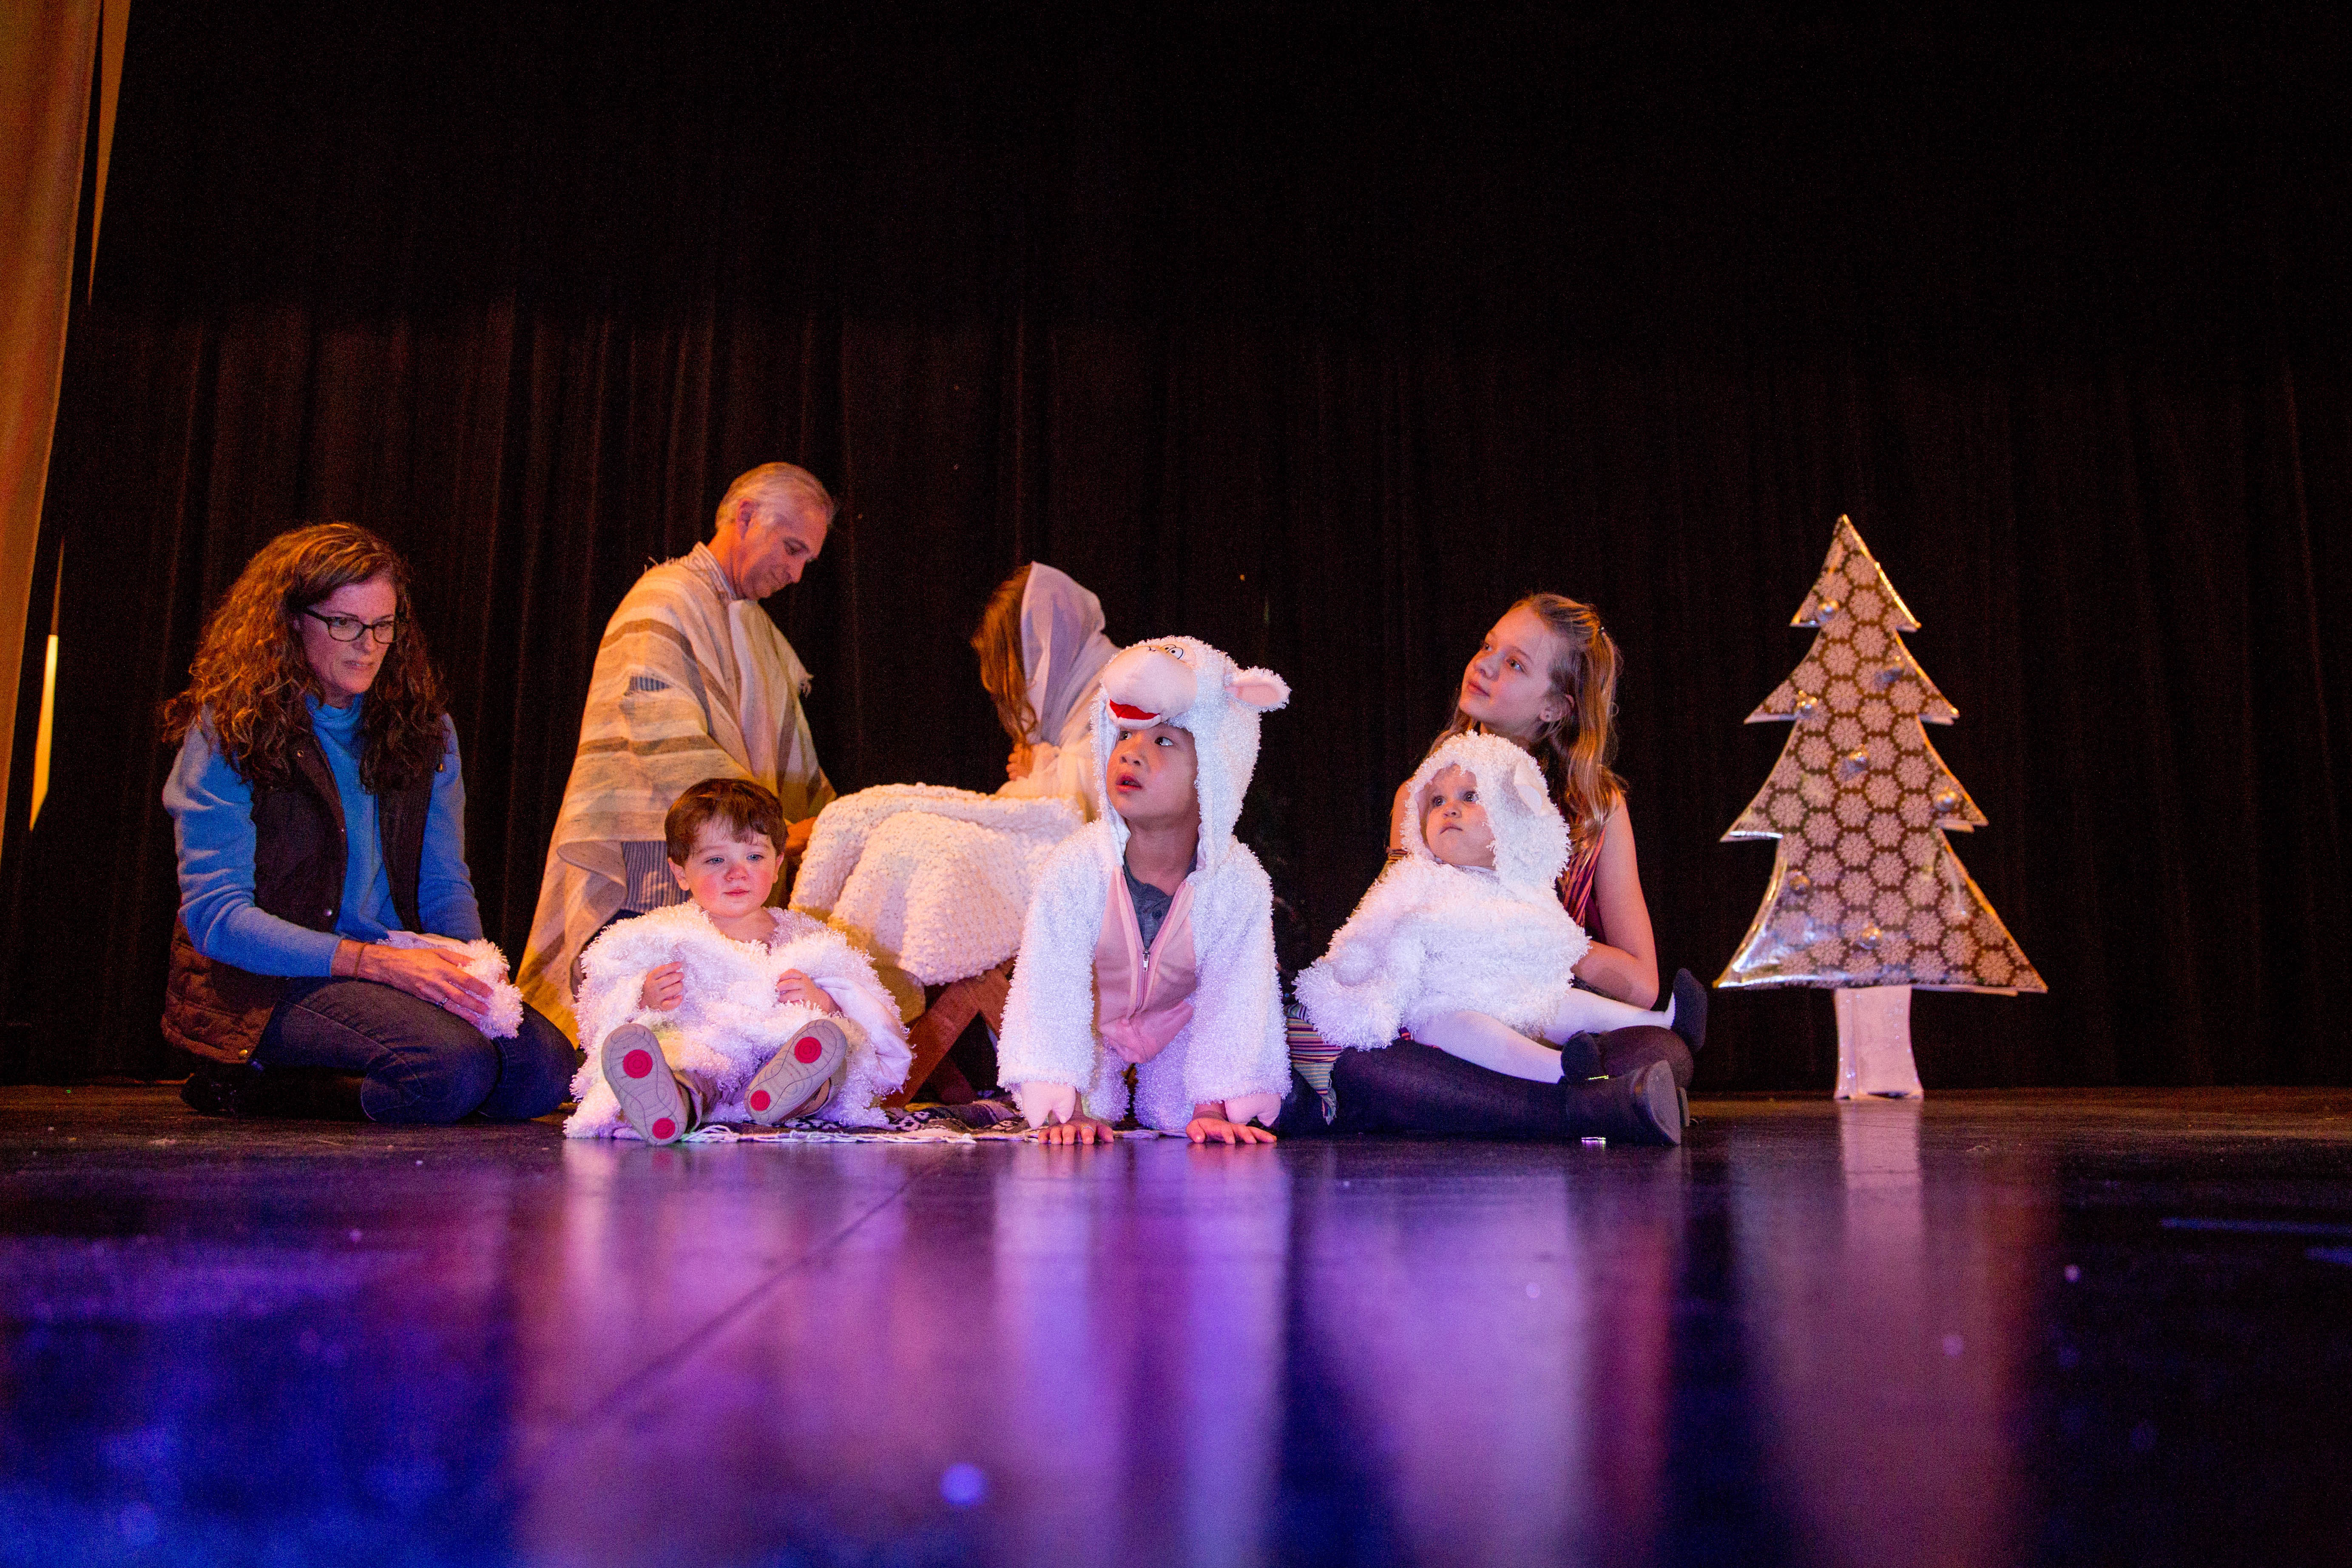 A Charlie Brown Christmas Play.A Charlie Brown Christmas At Kirkwood Ucc Southeast Conference United Church Of Christ